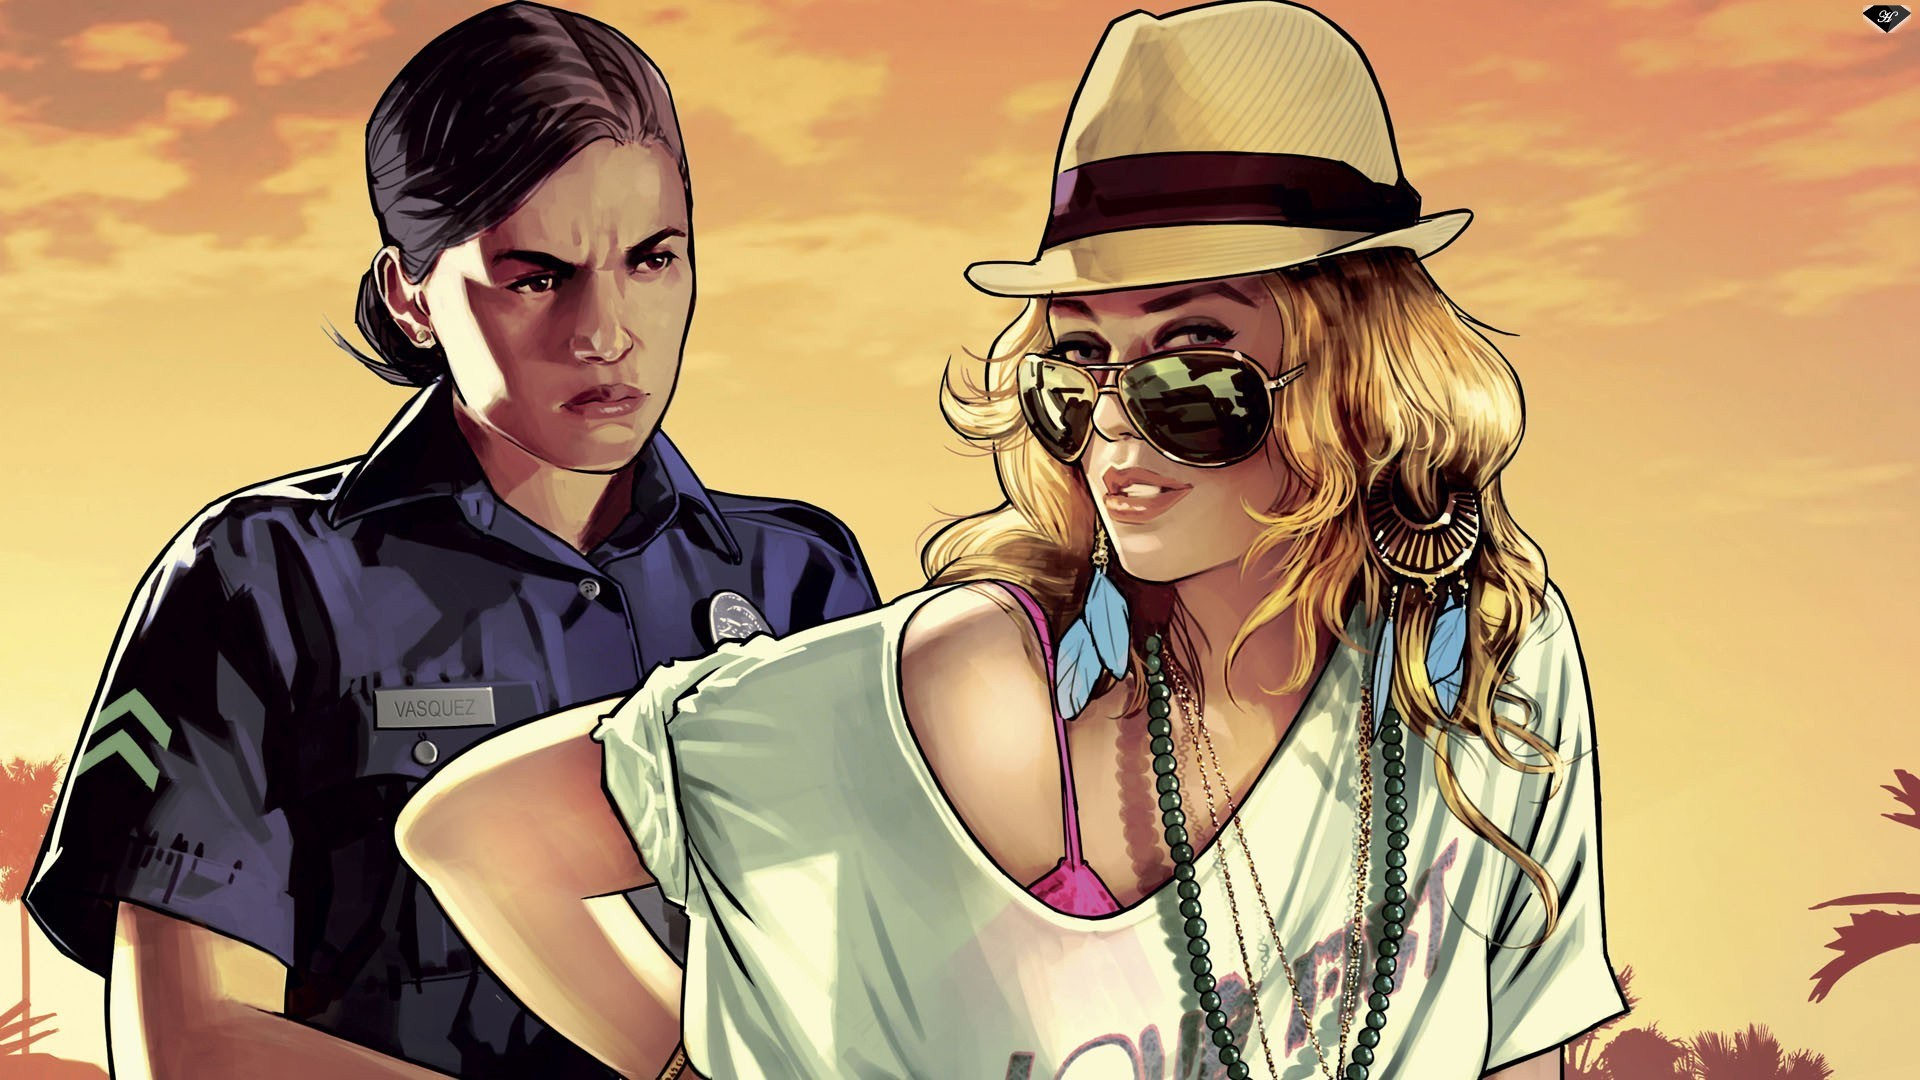 Grand Theft Auto 5 Action Adventure Video Game